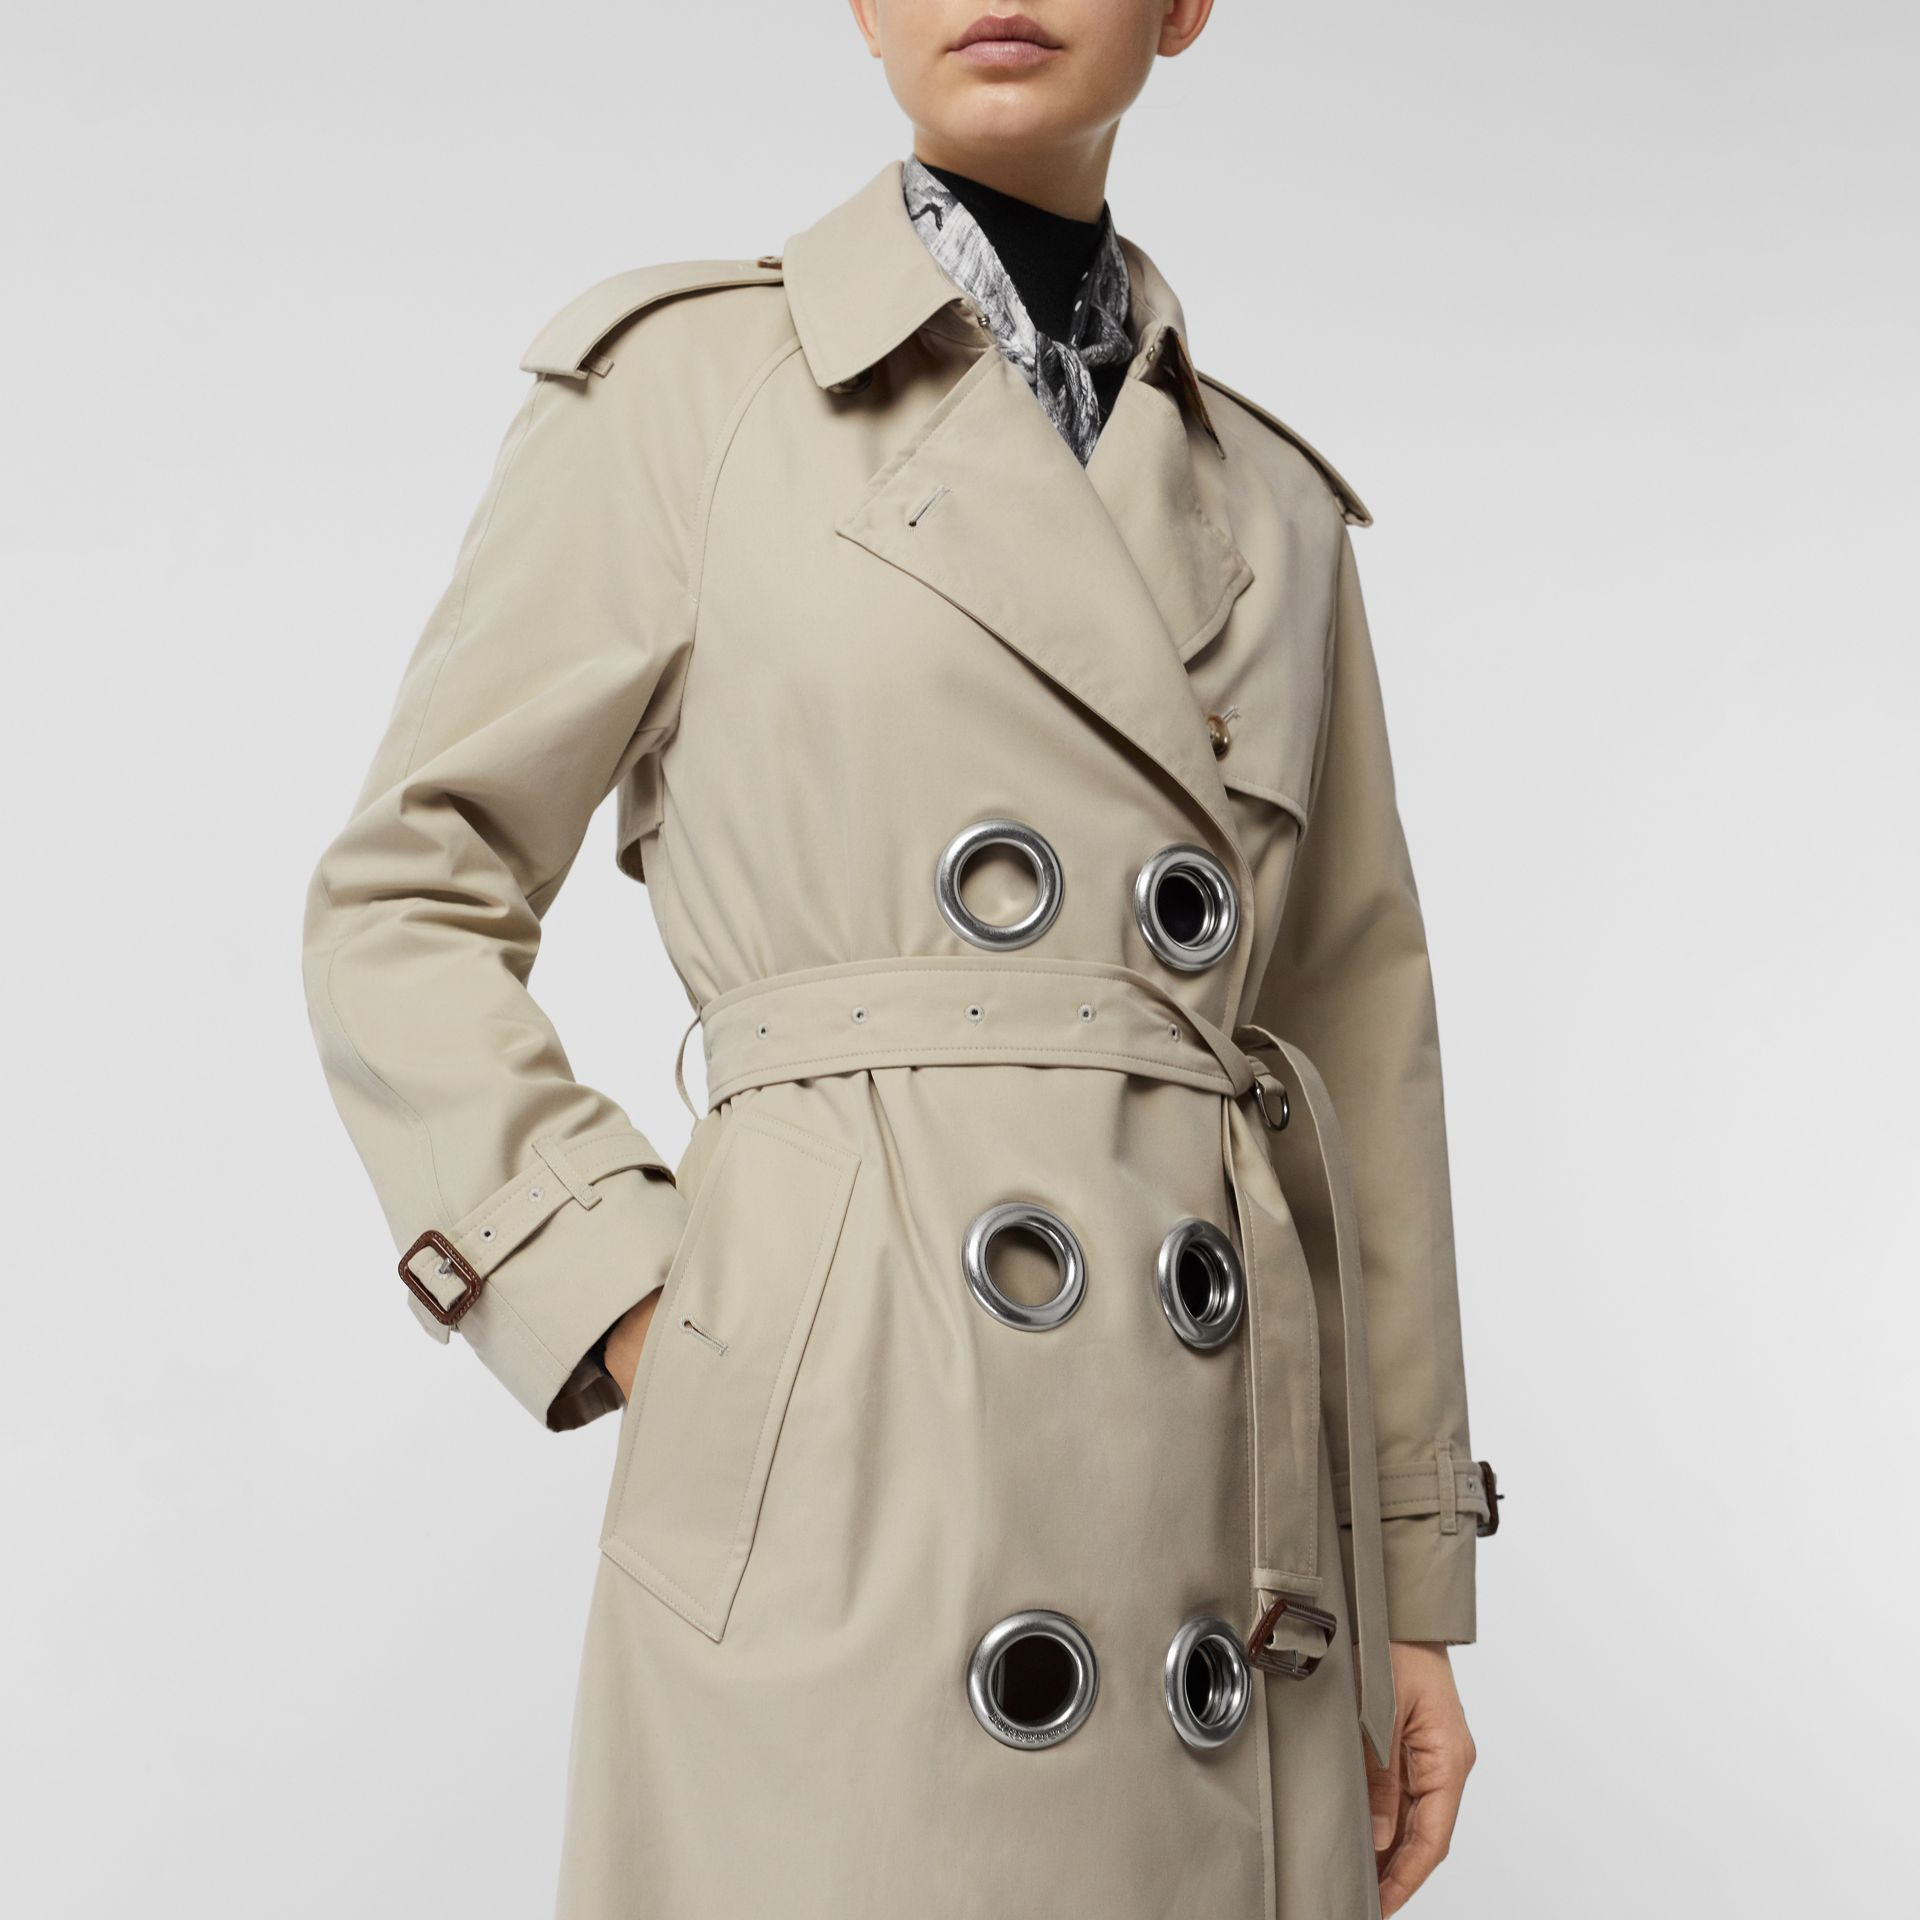 Grommet Detail Cotton Gabardine Trench Coat in Stone - Women | Burberry United Kingdom - gallery image 4